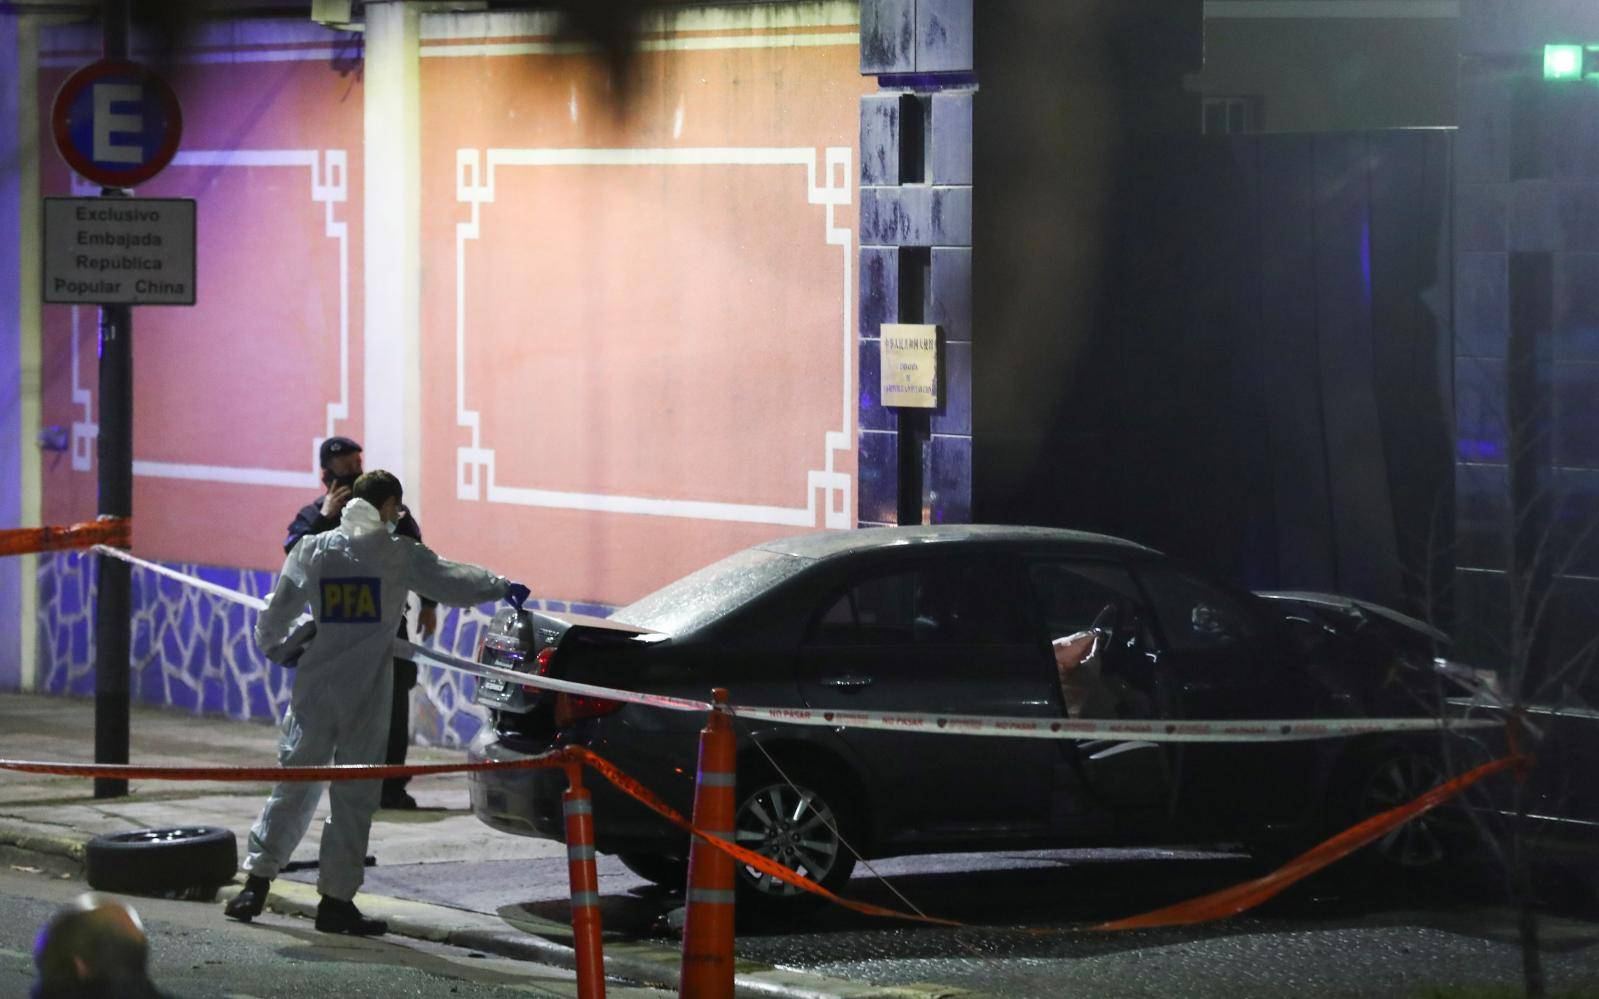 Argentine man crashes car into Chinese embassy